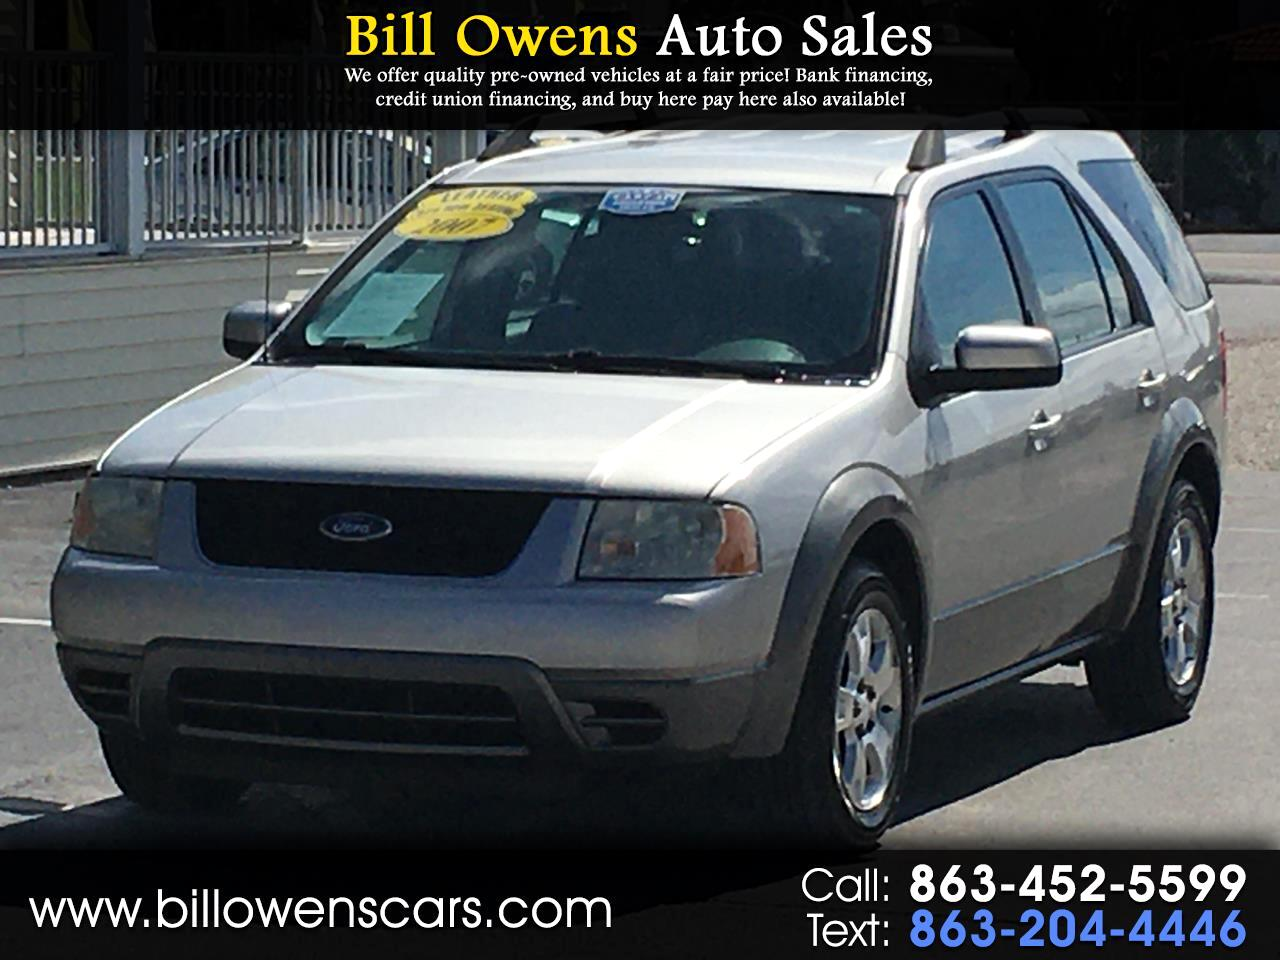 Ford Freestyle 4dr Wgn SEL FWD 2007